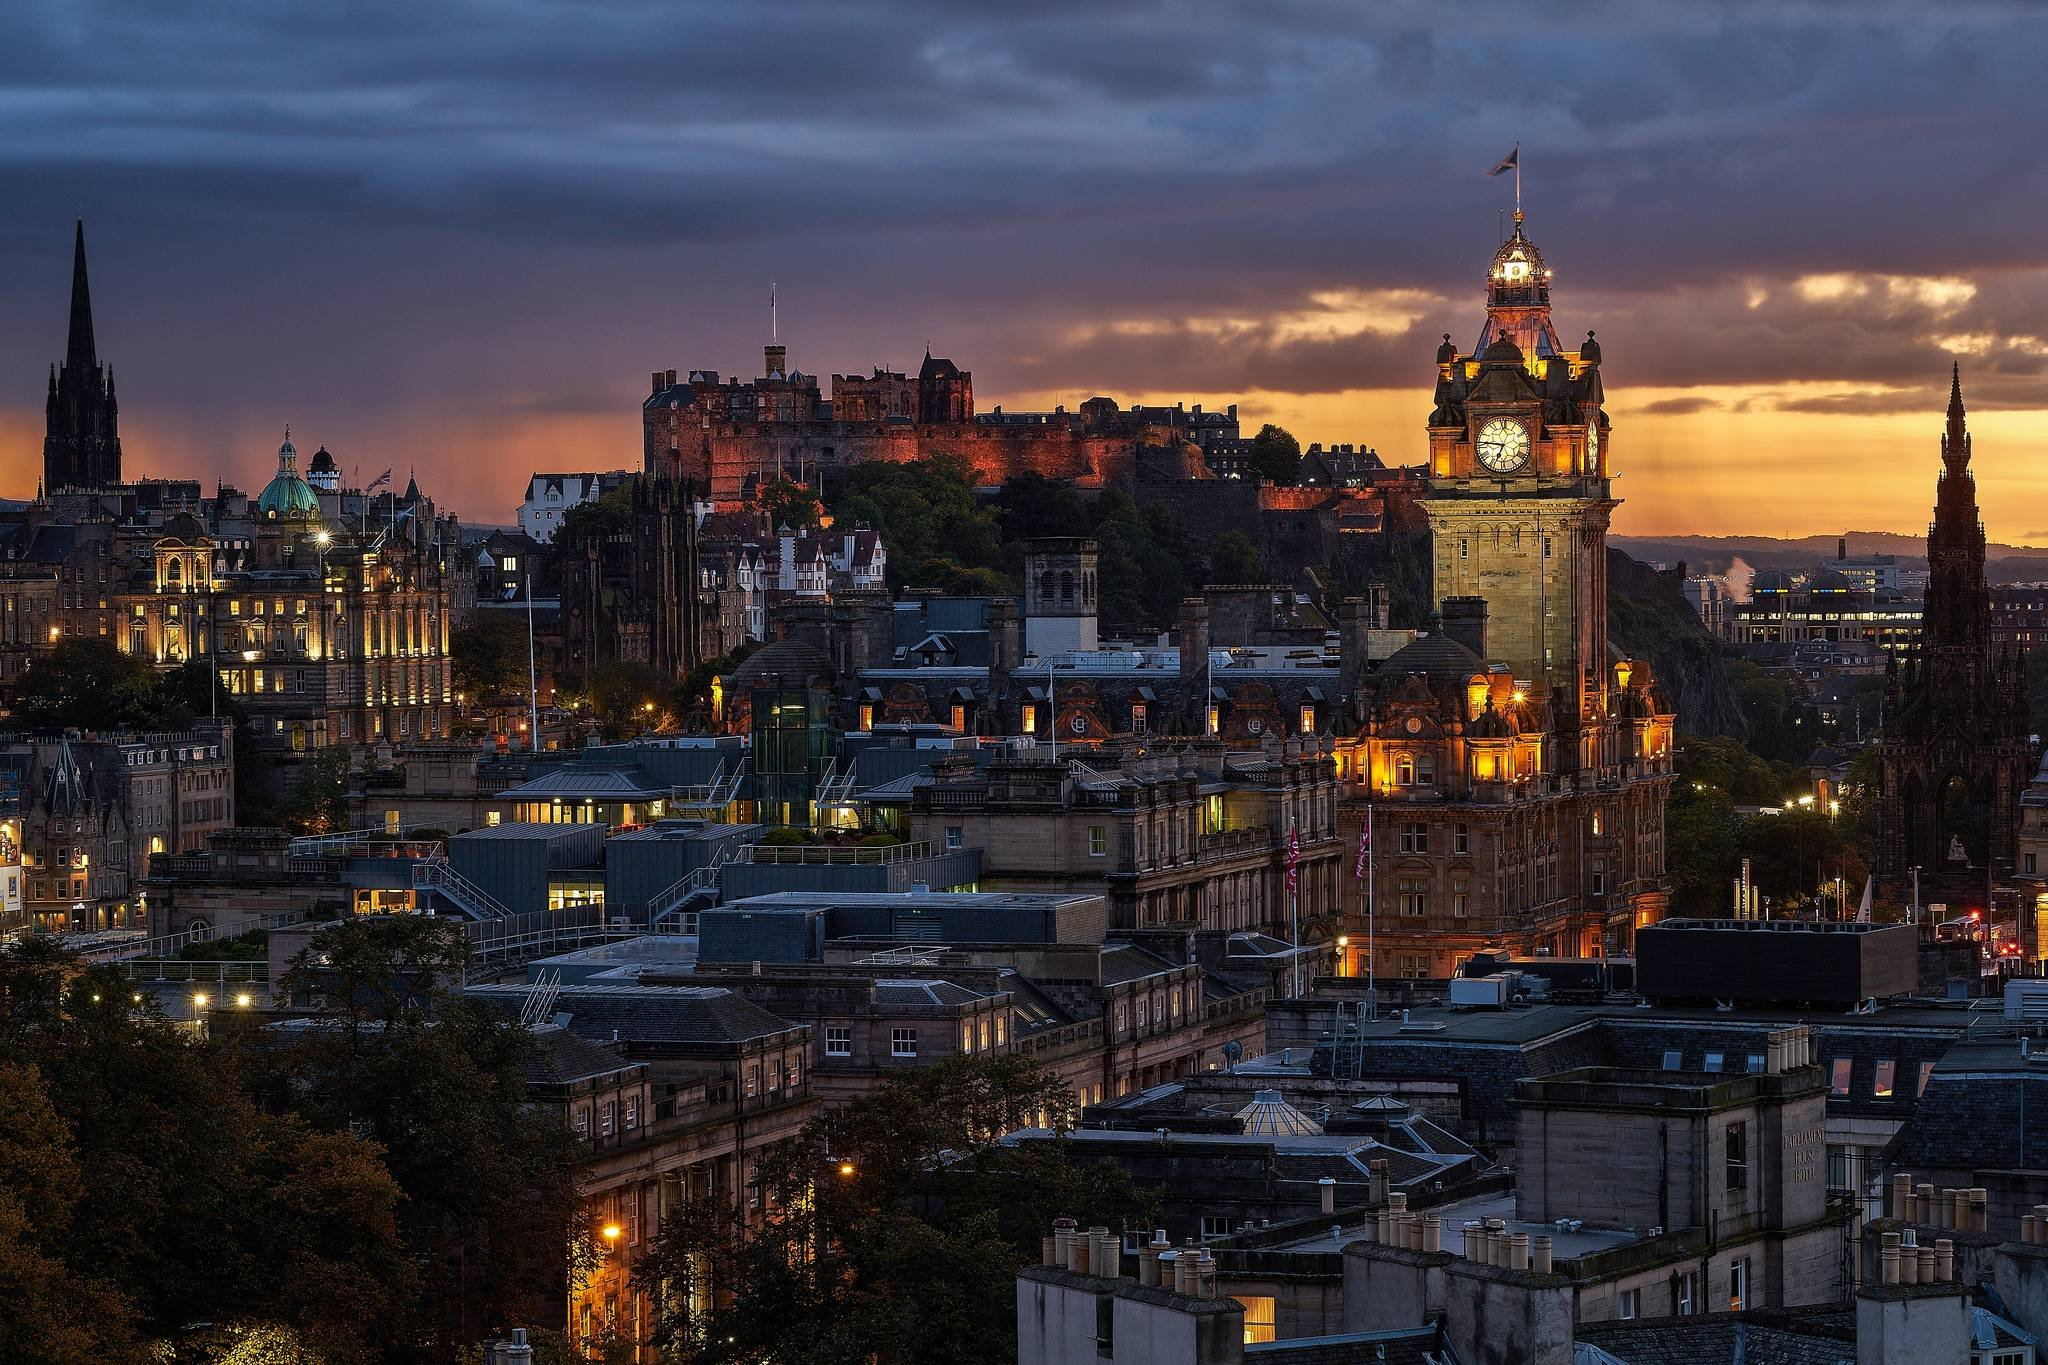 edinburgh scotland wallpaper - photo #6